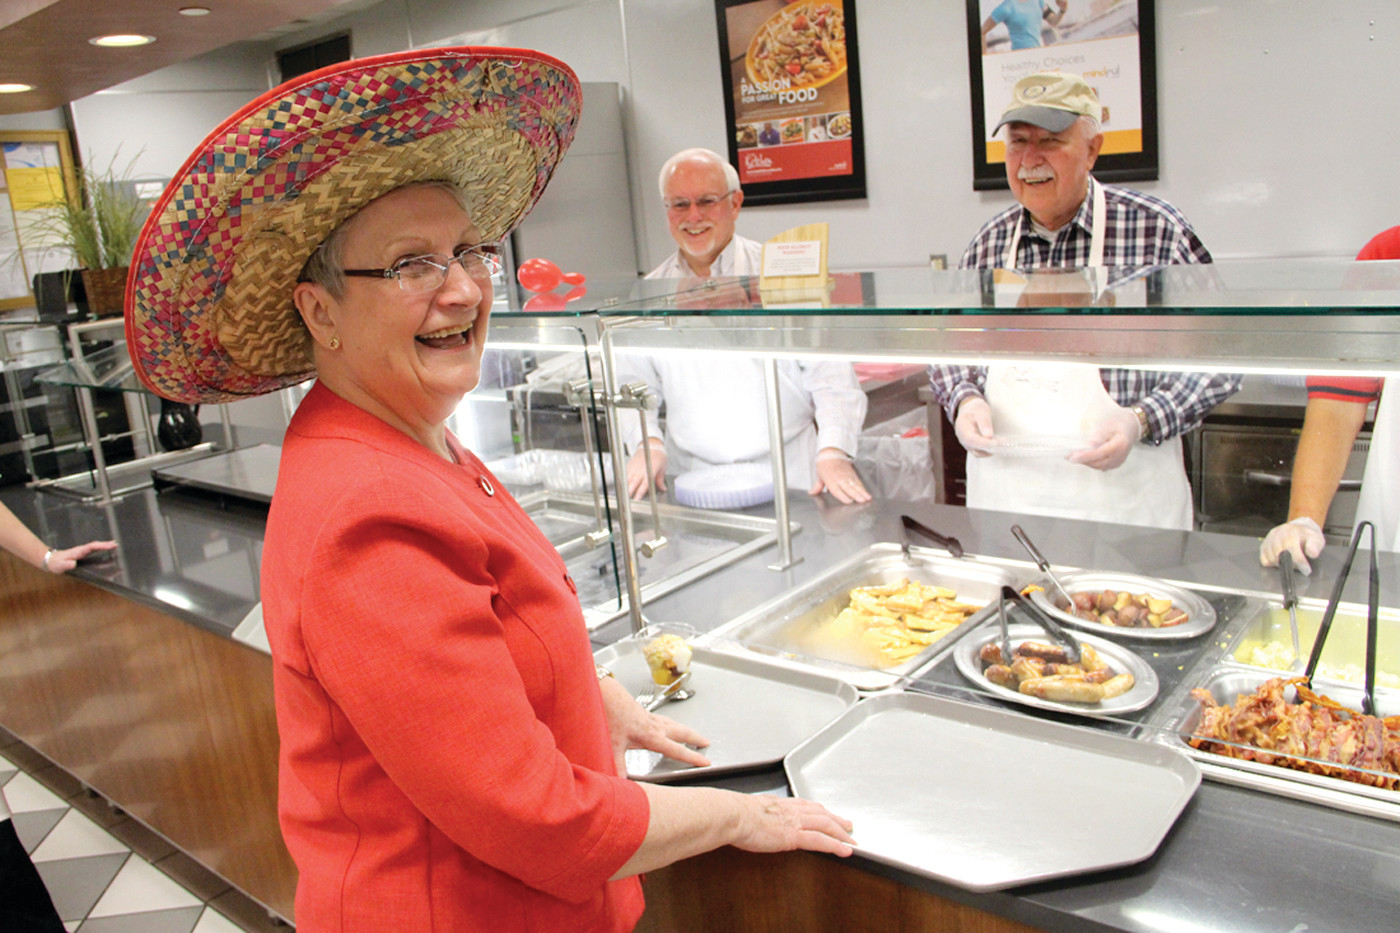 IN THE SPIRIT OF THE DAY: Not only was it the Rotary Club May Breakfast but also Cinco de Mayo, the day Mexican celebrate the May 5, 1862 defeat of France at the Battle of Puelba. Club member Carol Batty donned a sombrero to the amusement of John Smith and Donald Morash who stood by to fill her breakfast order.